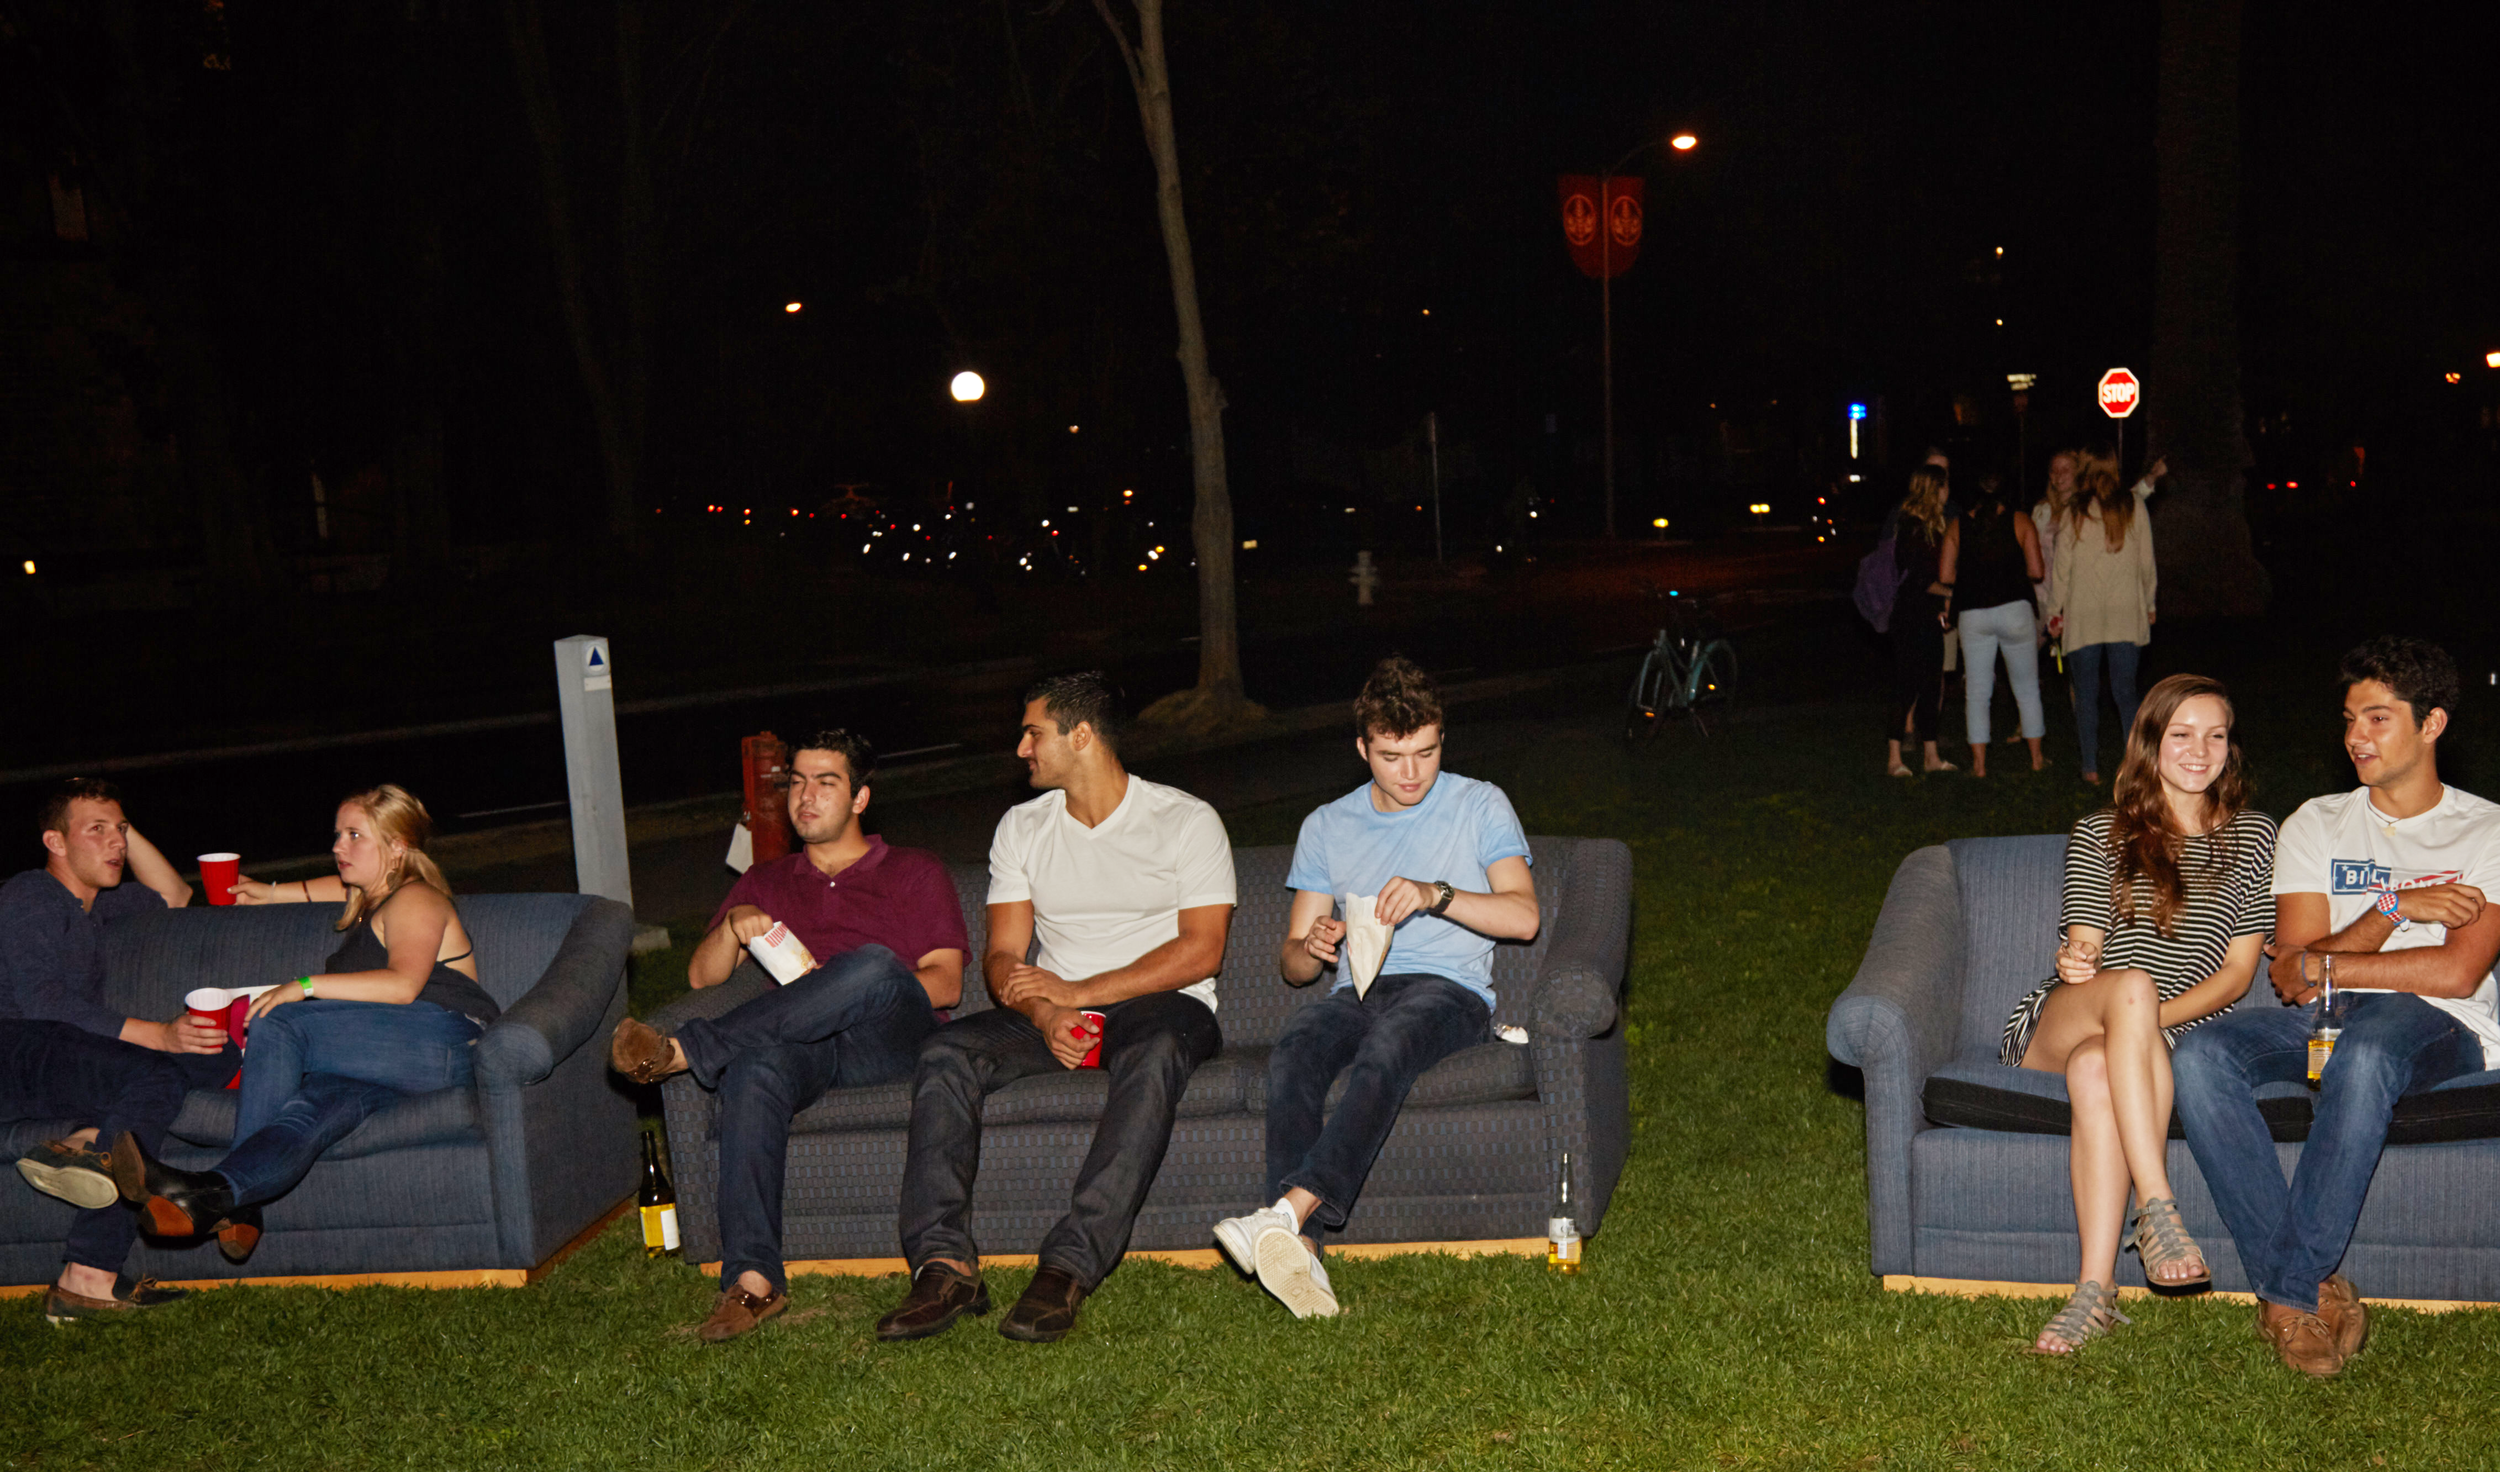 students_on_couch.png